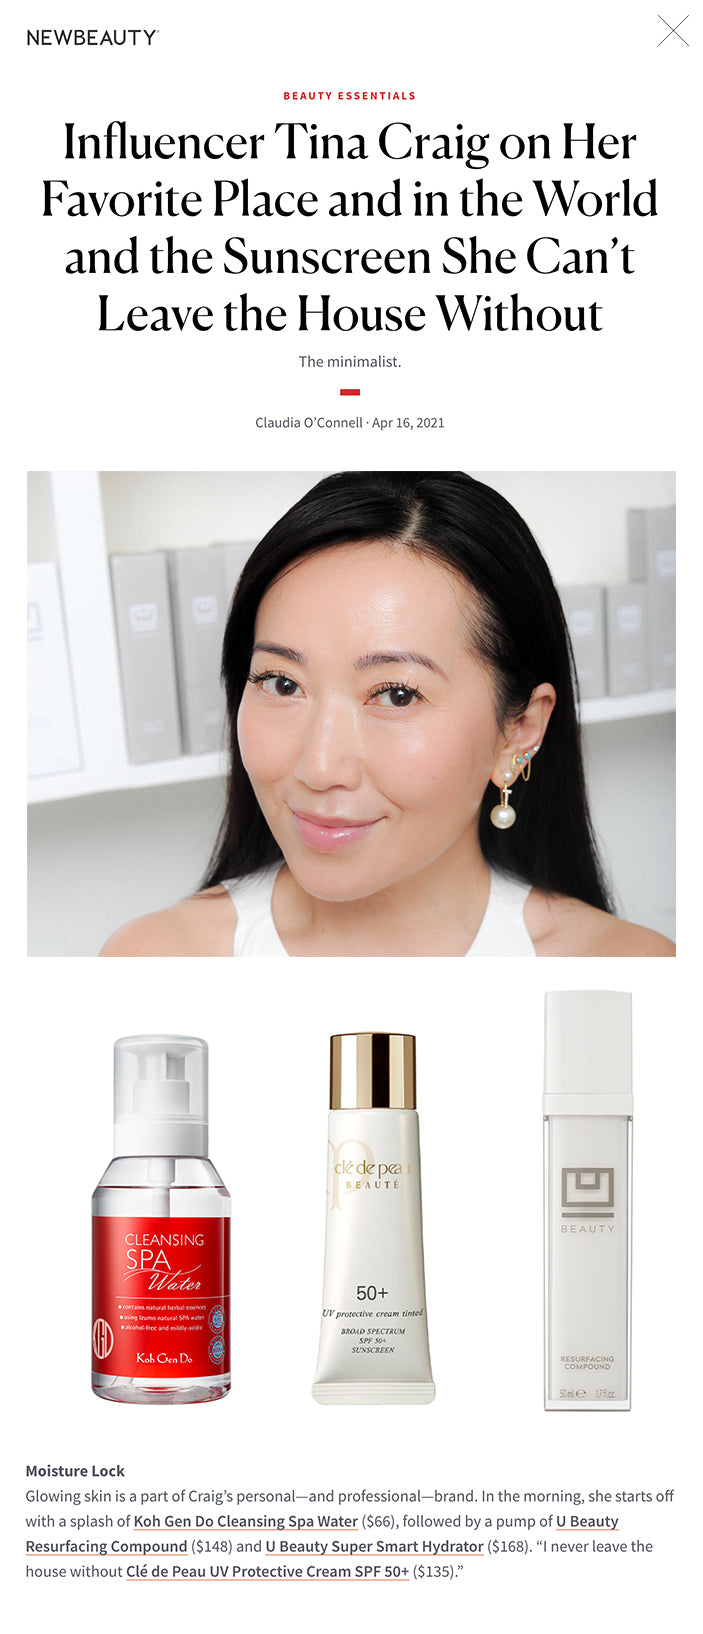 """Influencer Tina Craig on Her Favorite Place and in the World and the Sunscreen She Can't Leave the House Without The minimalist. Claudia O'Connell · Apr 16, 2021 Influencer Tina Craig on Her Favorite Place and in the World and the Sunscreen She Can't Leave the House Without featured image This article first appeared in the Spring 2021 issue of New Beauty. Click here to subscribe From the creation of one of the first-ever fashion blogs, Bagsnob, to a popular beauty hack–themed TikTok channel, entrepreneur Tina Craig likes to stay busy, with her latest sights on U Beauty: a science-based skin-care line that aims to unclutter routines.  Night Light """"I always light a candle beforeI begin my evening skin-care routine. My favorite is the Cander Paris #01 ($92)—it has hints of firewood, citrus and pine.""""   Advertisement Heart of Hearts Craig's birthplace, Taipei, Taiwan, has a special place in her heart. """"This little island is known for the best Chinese cuisine in the world and a nightlife scene that puts New York City to shame. If you crave a quiet escape, sparkling turquoise waters and majestic mountain retreats are only miles away.""""  Space Cadet With the prospect of commercial space flight becoming a near reality, she shares her fantasy of exploring the celestial expanse. """"I have always dreamt of visiting the moon, and now with the launch of SpaceX x NASA, I am ready!""""  It's Personal At NewBeauty, we get the most trusted information from the beauty authority delivered right to your inbox   Advertisement  Moisture Lock Glowing skin is a part of Craig's personal—and professional—brand. In the morning, she starts off with a splash of Koh Gen Do Cleansing Spa Water ($66), followed by a pump of U Beauty Resurfacing Compound ($148) and U Beauty Super Smart Hydrator ($168). """"I never leave the house without Clé de Peau UV Protective Cream SPF 50+ ($135).""""  Green Team Craig doesn't drink coffee or alcohol too often, but matcha green tea is a necessity. """"My matcha tea is my only """